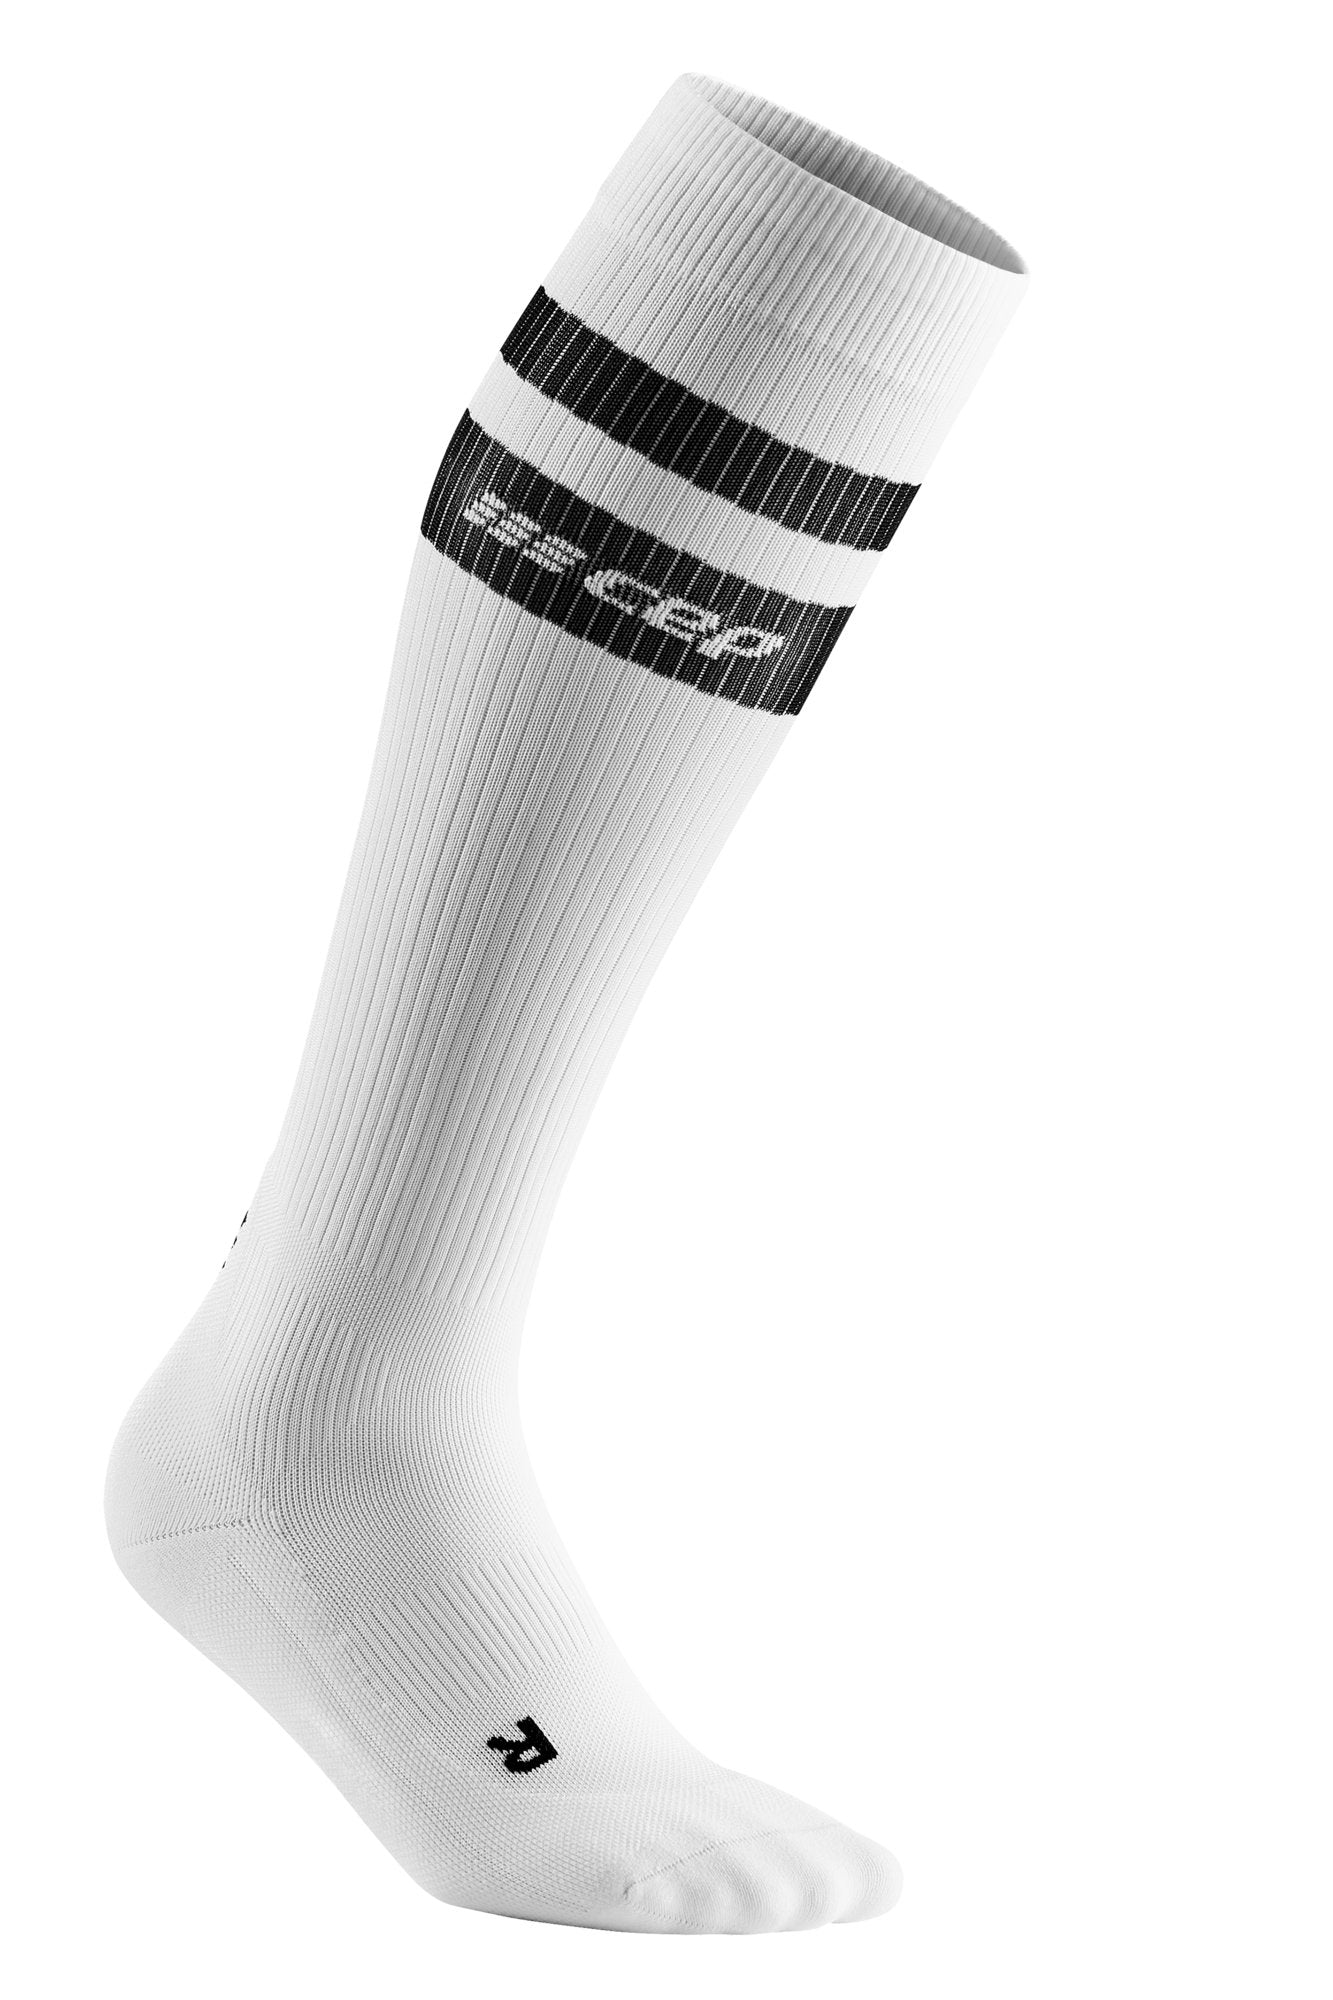 80s Compression Tall Socks 3.0 for Women